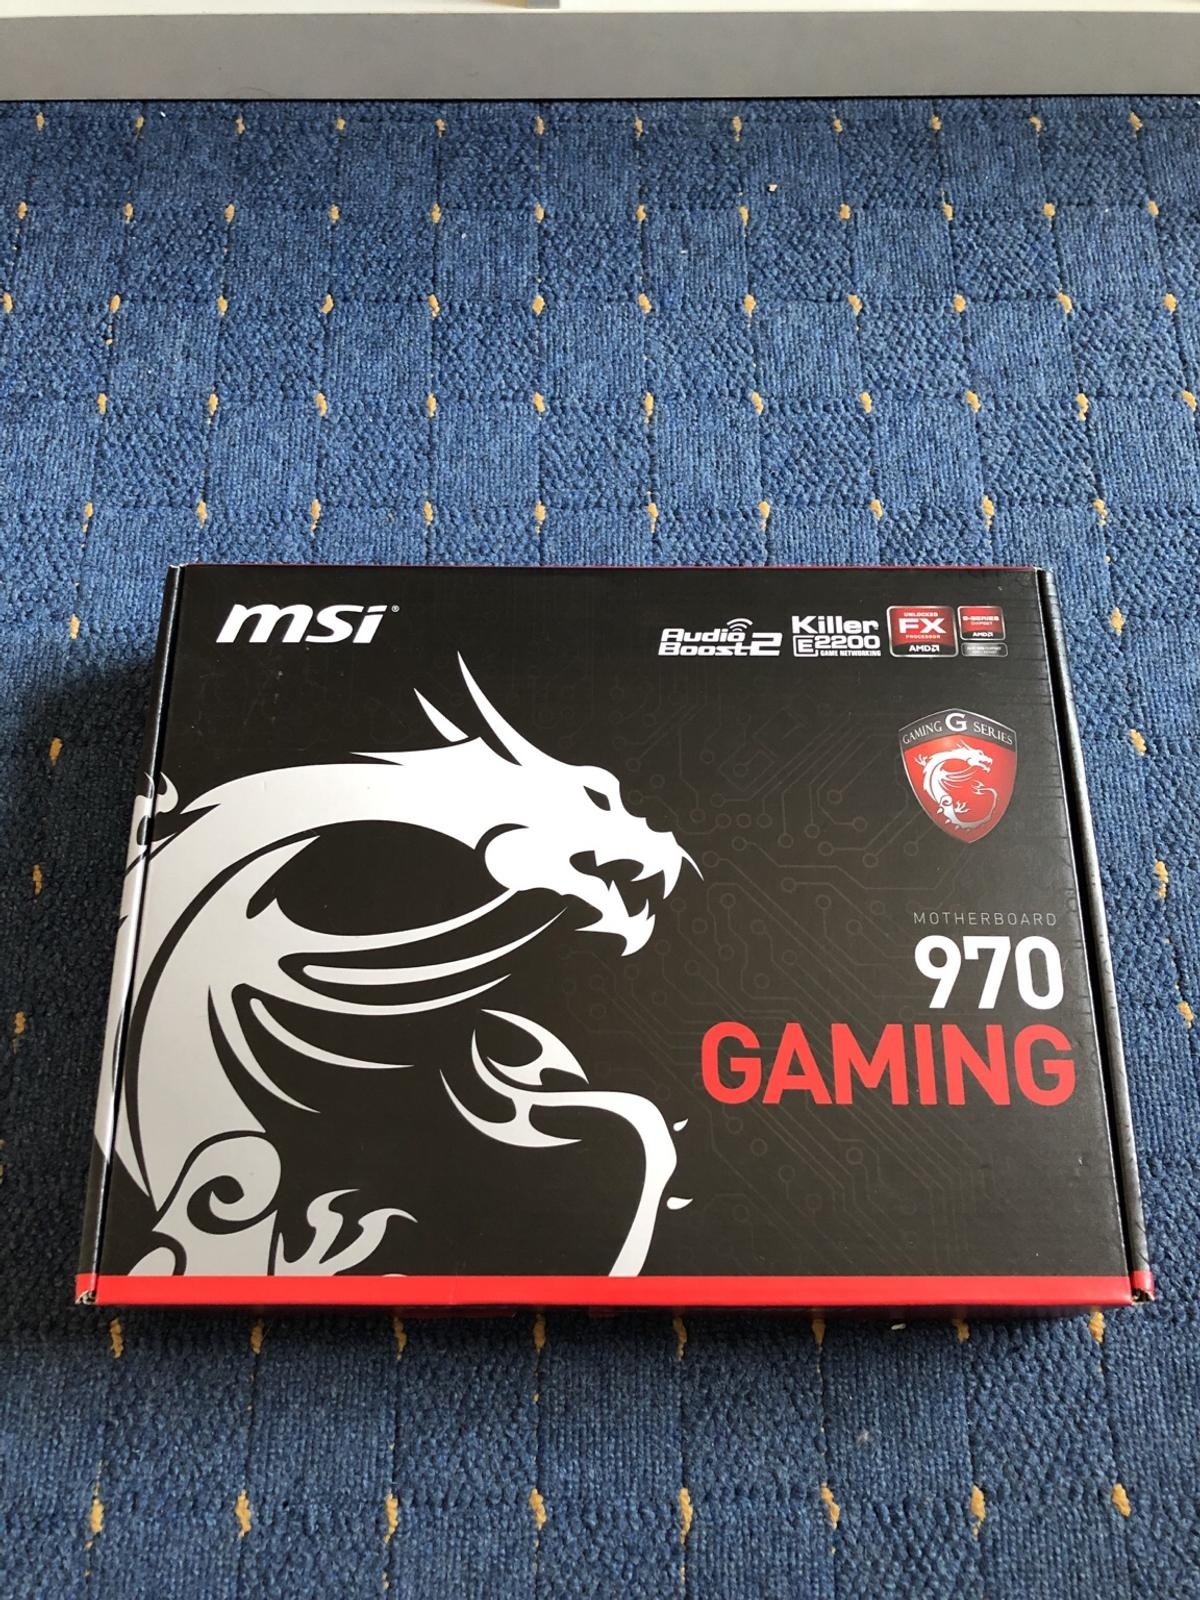 MSI 970 Gaming Motherboard in DE6 Dales for £65 00 for sale